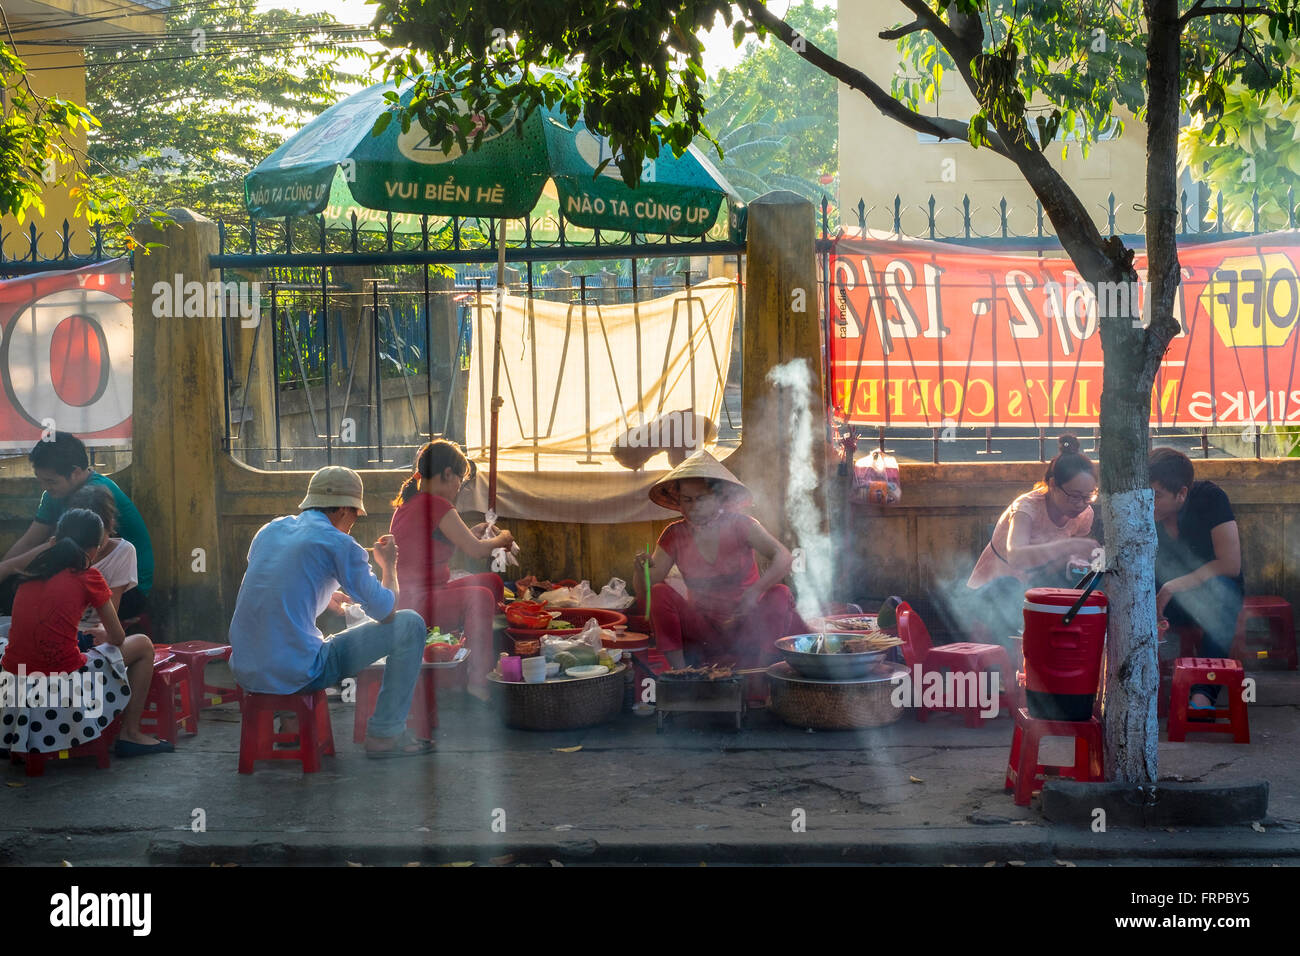 Stock Photo - People eating at street food stall on the sidewalk in Hoi An, Vietnam